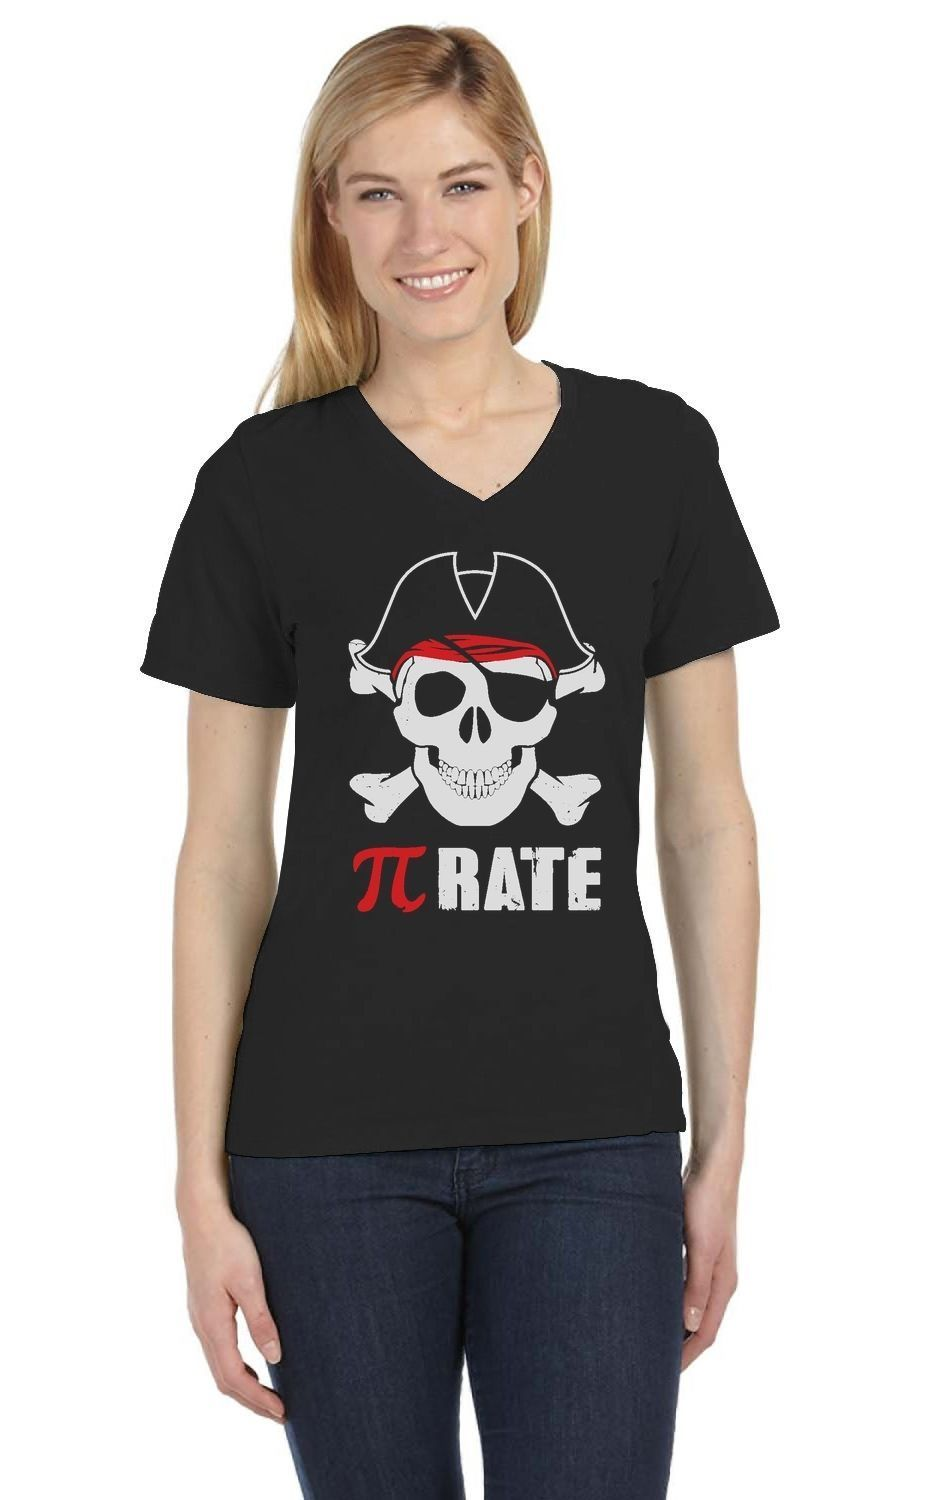 Pi-Rate - Funny Math Pirate Skull And Crossbones V-Neck Women T-Shirt Cool